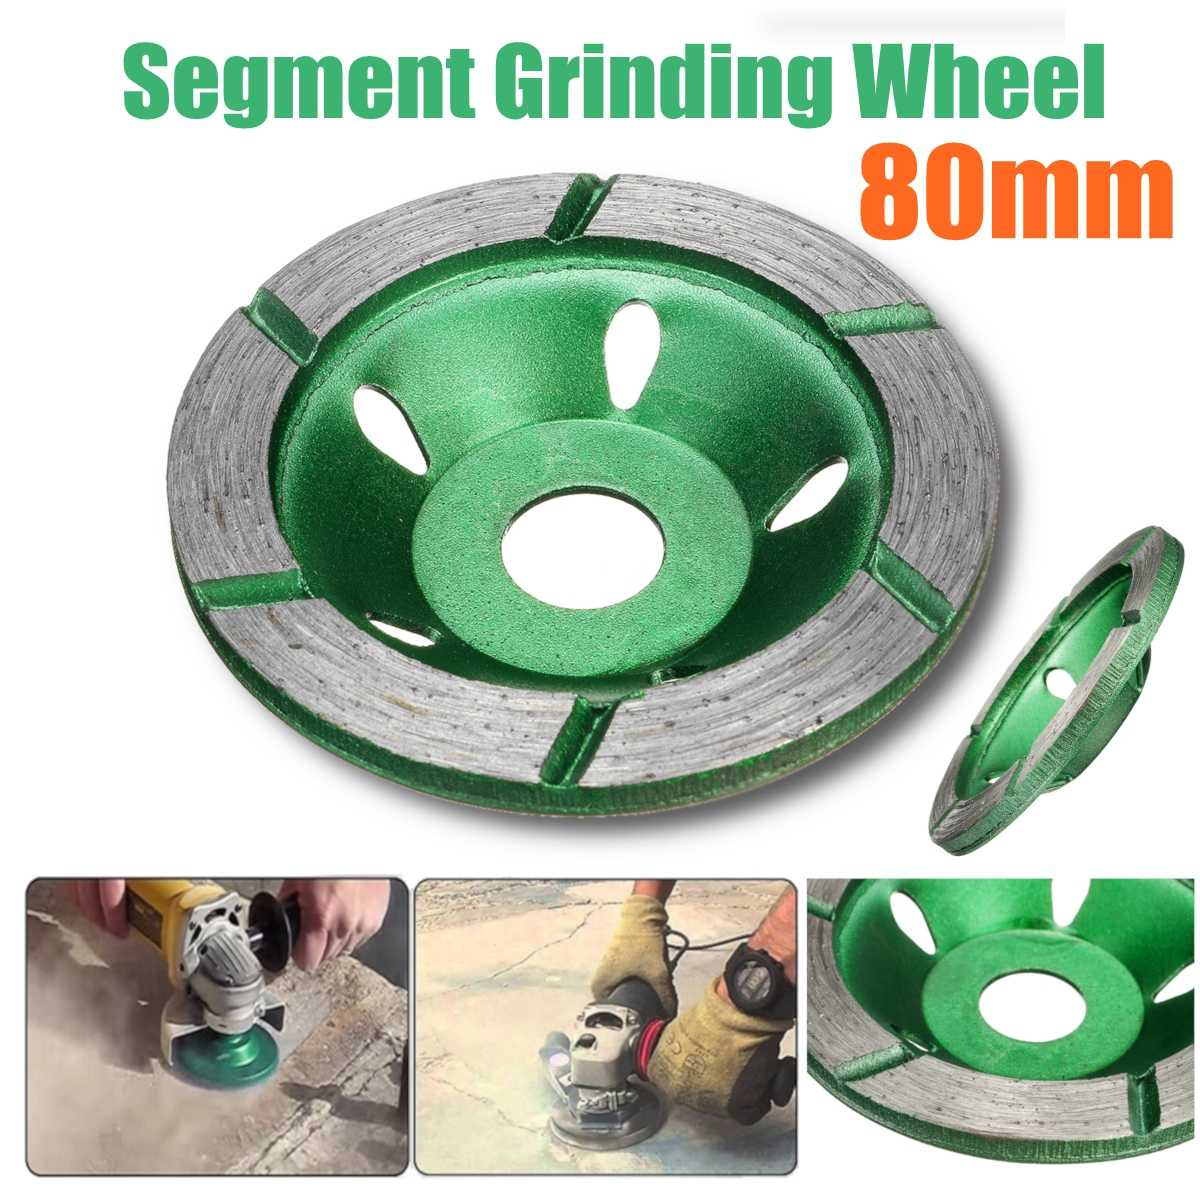 80mm/3.15inch Segment Grinding Wheel Diamond Grinding Disc Grinding Cup Concrete Granite Stone Ceramics Tools